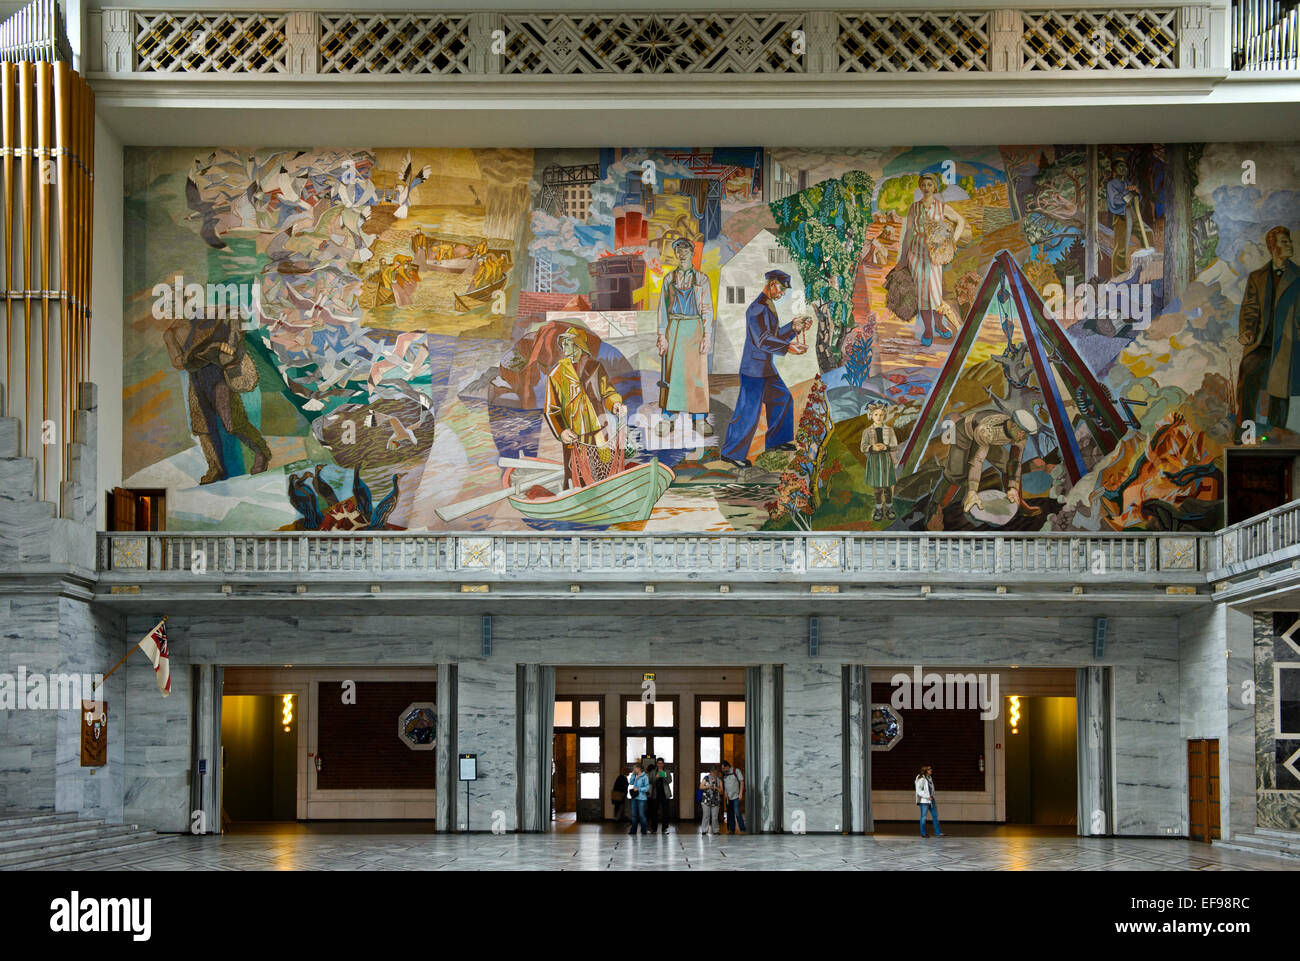 Mural'Folket i arbeid og fest' by Alf Rolfsen at the North wall of the Central Hall of the Oslo City Hall, - Stock Image